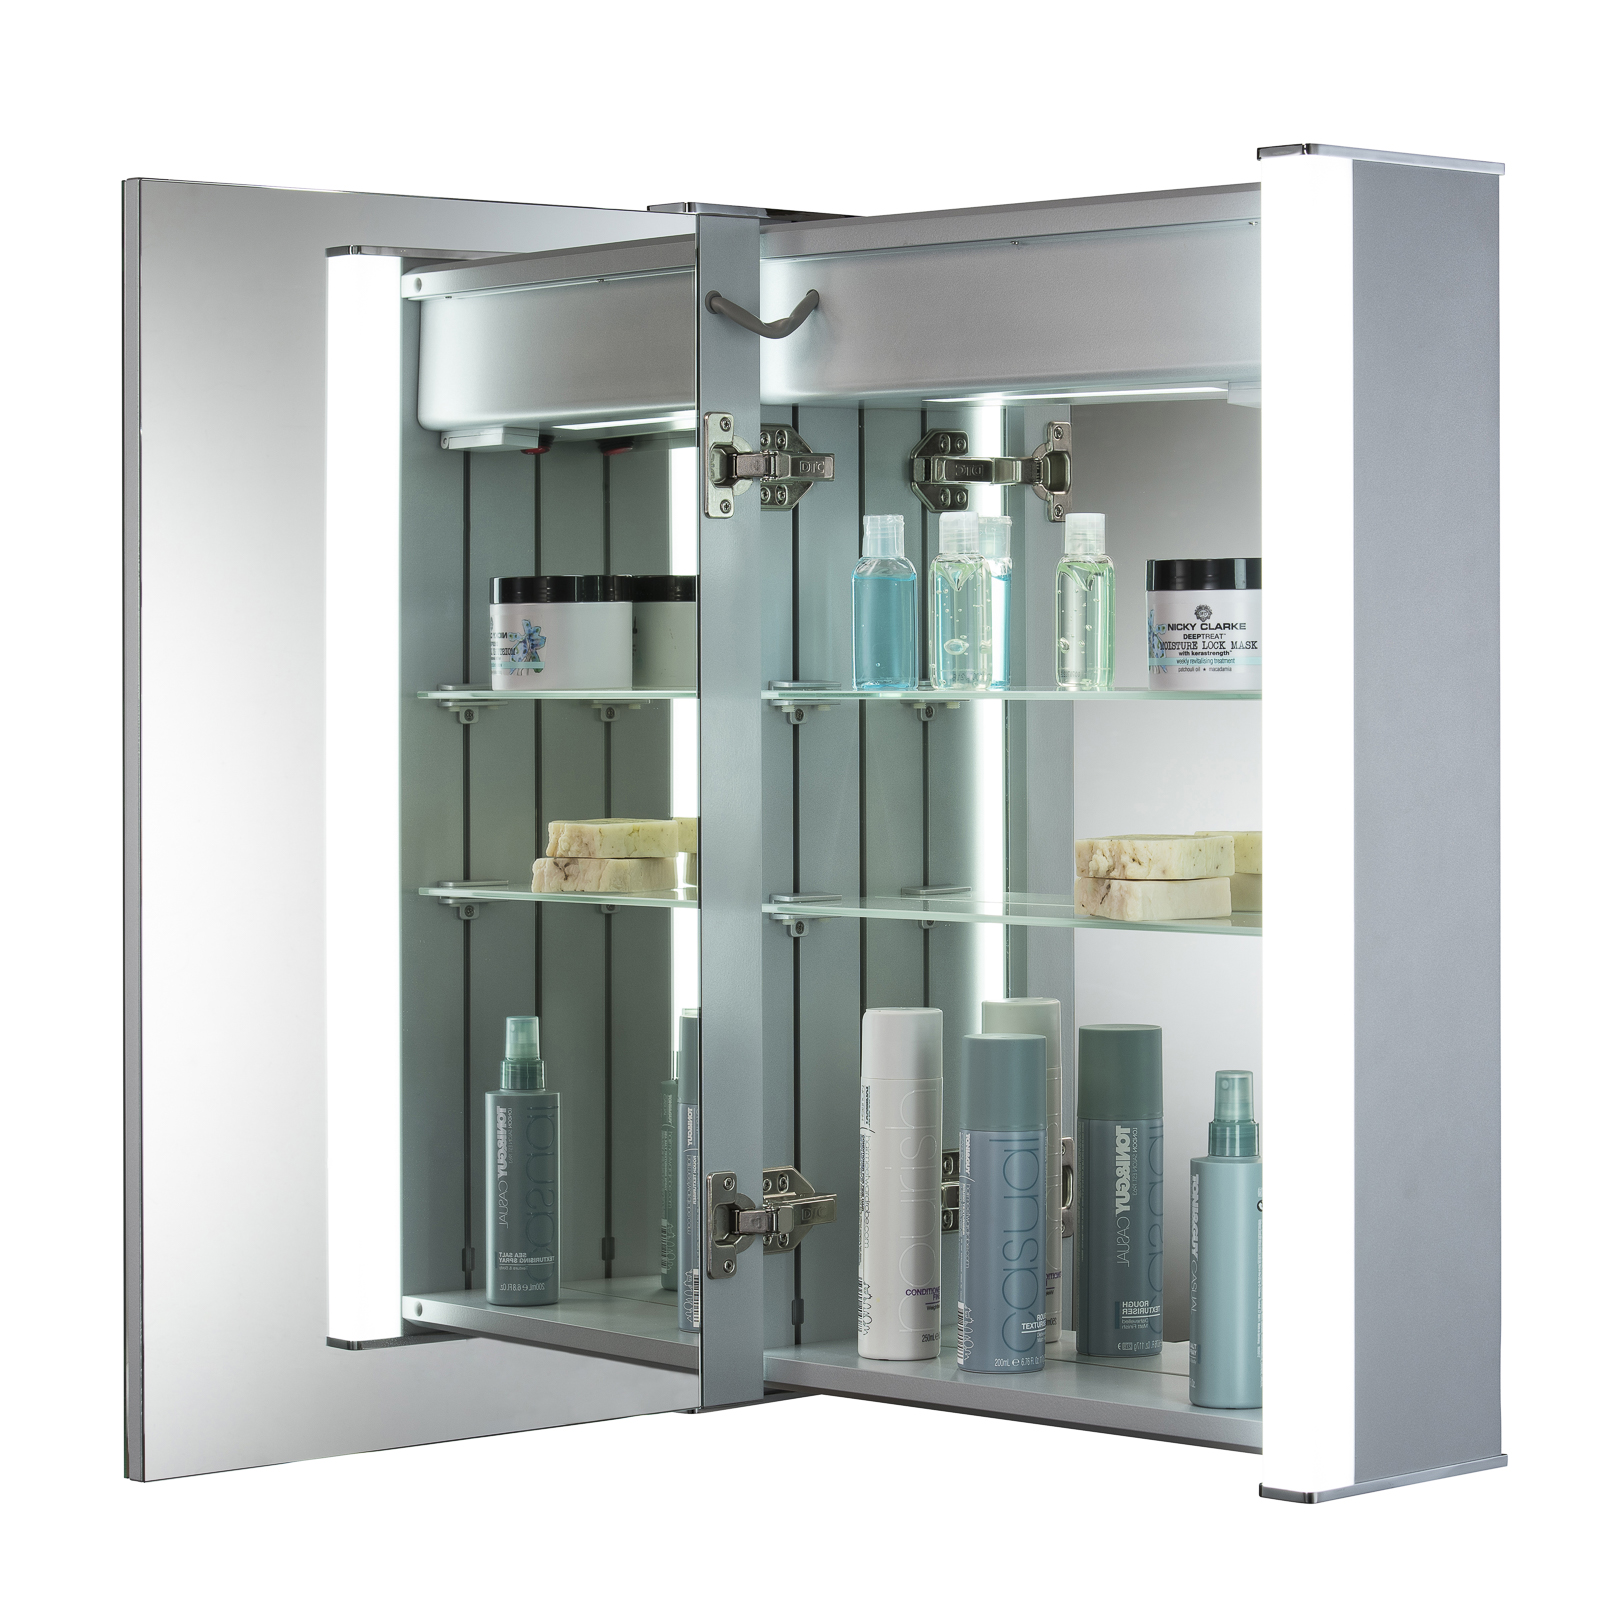 Led illuminated bathroom mirror cabinet with demister shaver sensor 70x50 c11 ebay Neue design bathroom mirror